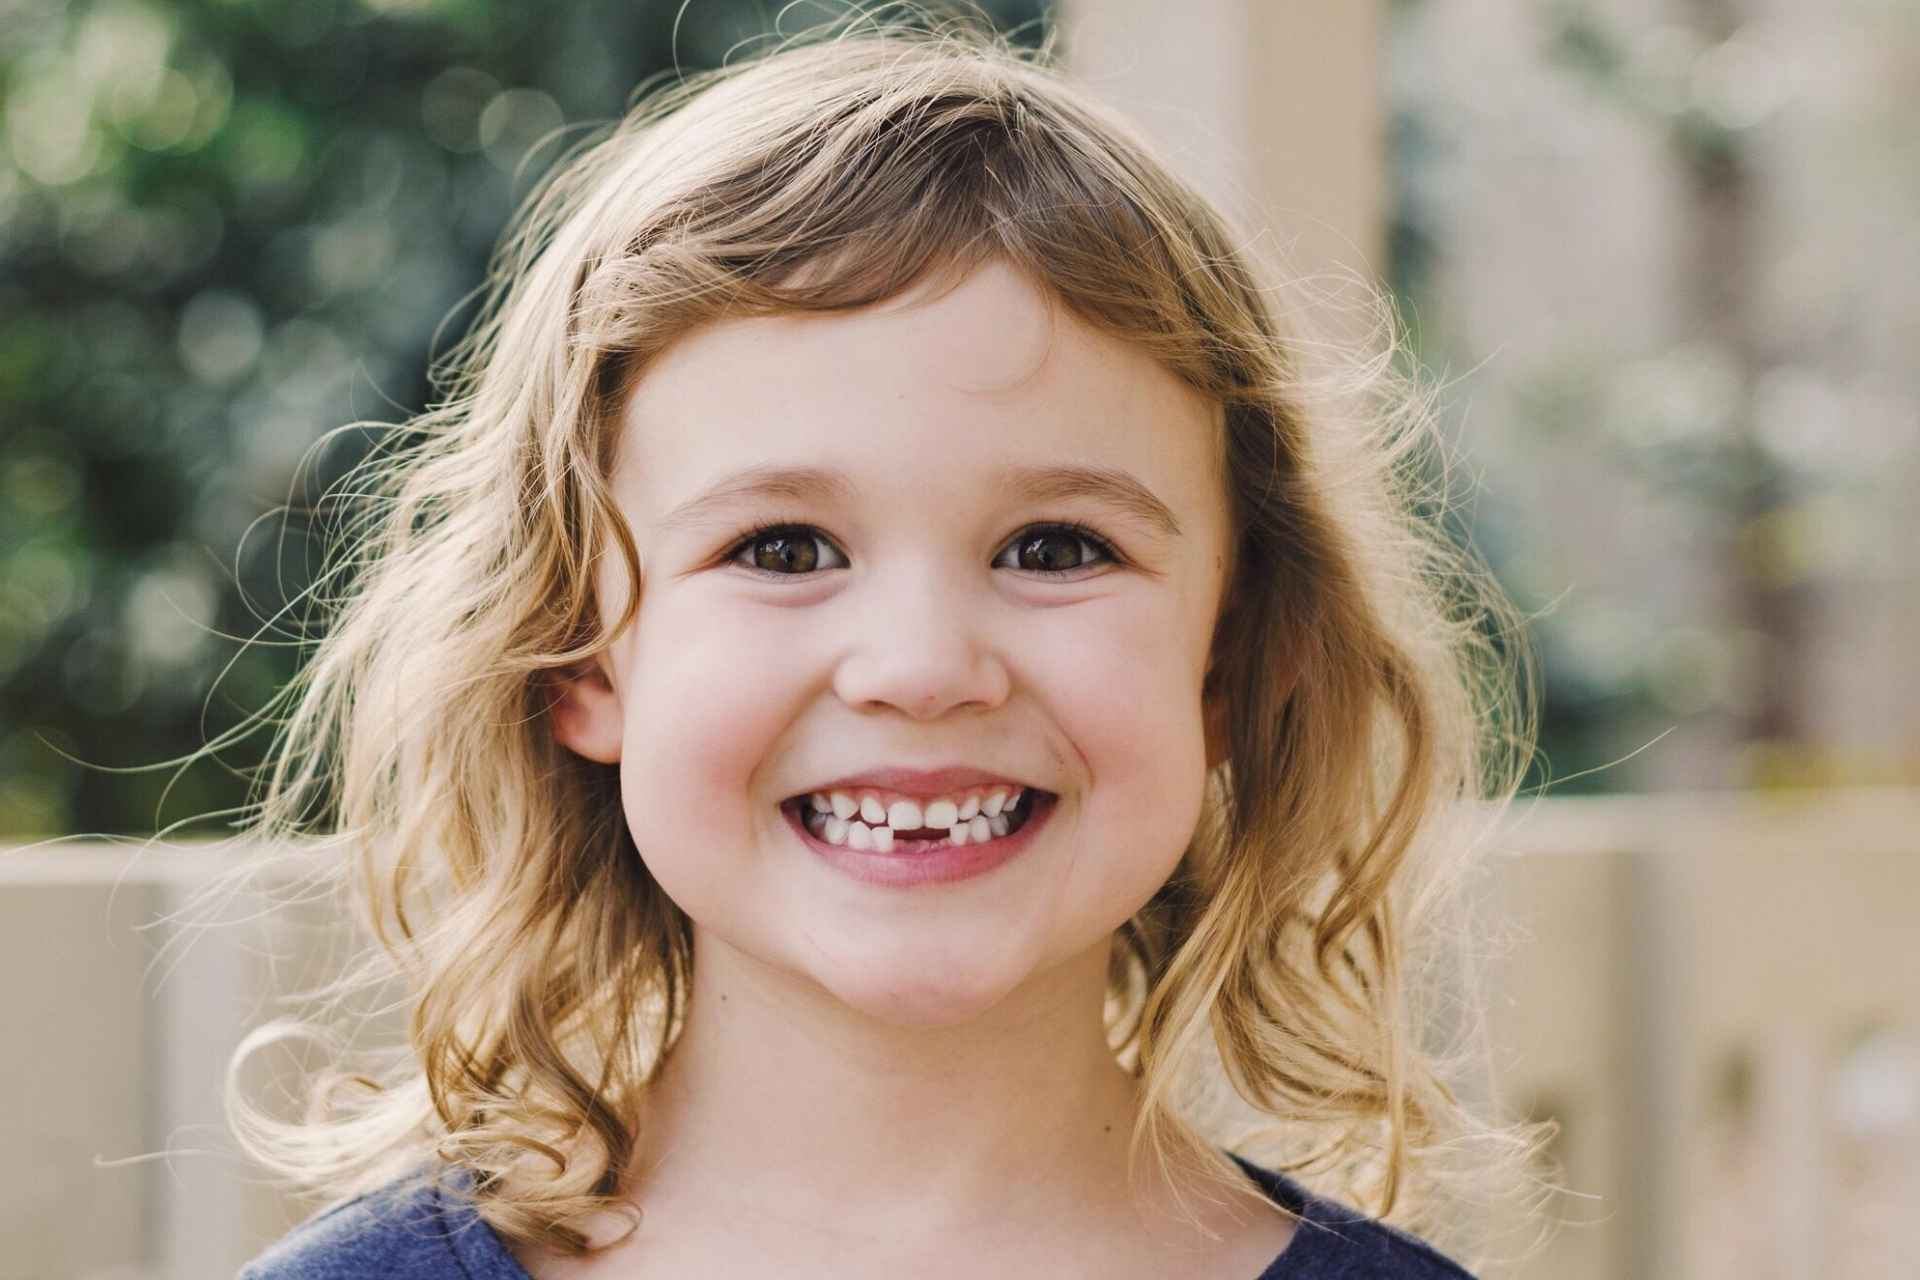 Little girl missing two lower front teeth